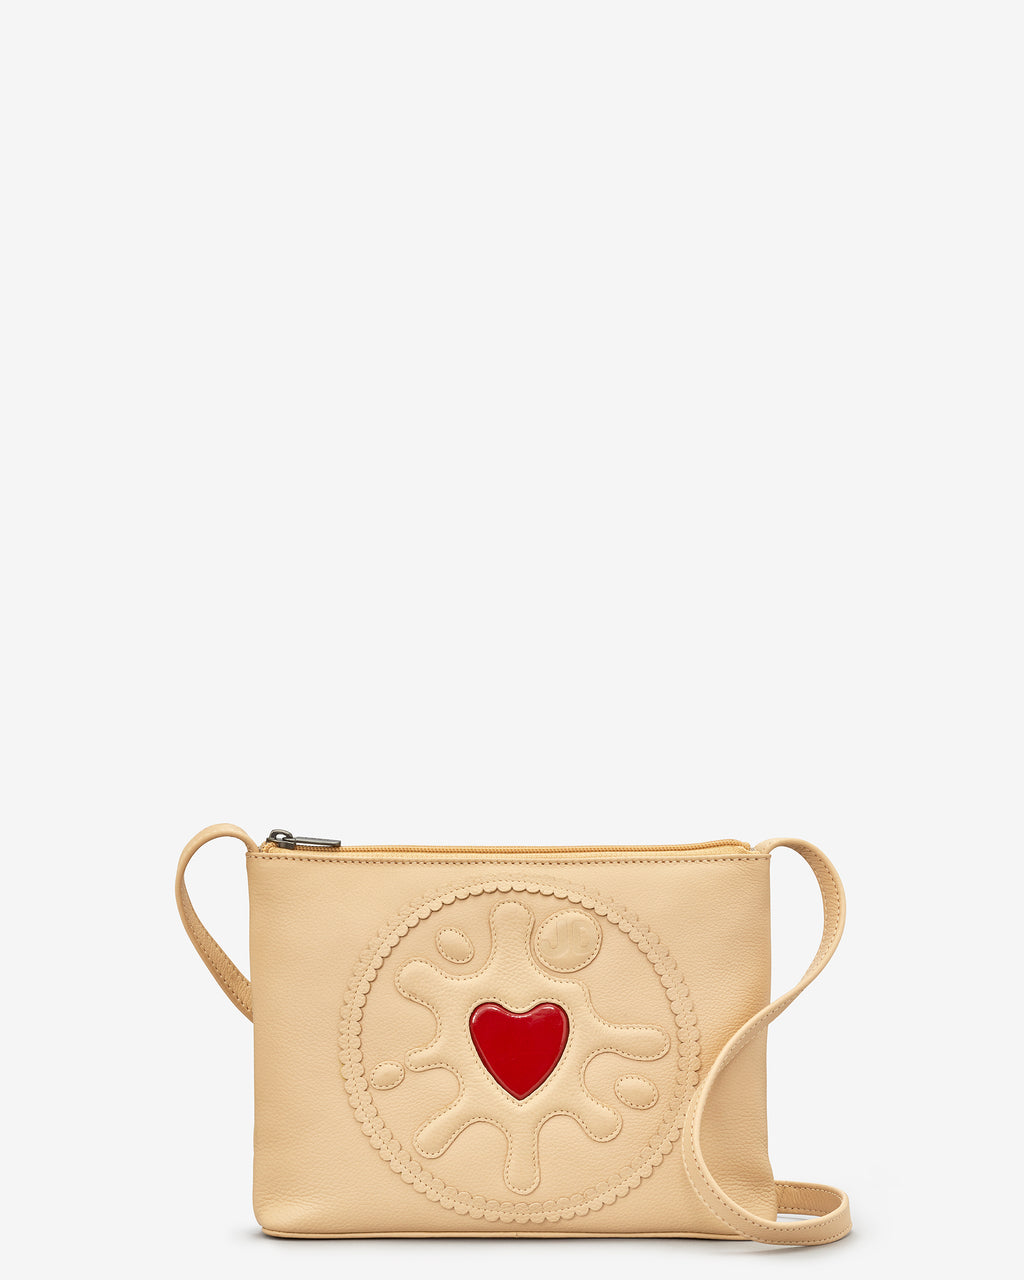 Jammie Dodger Biscuit Leather Cross Body Bag